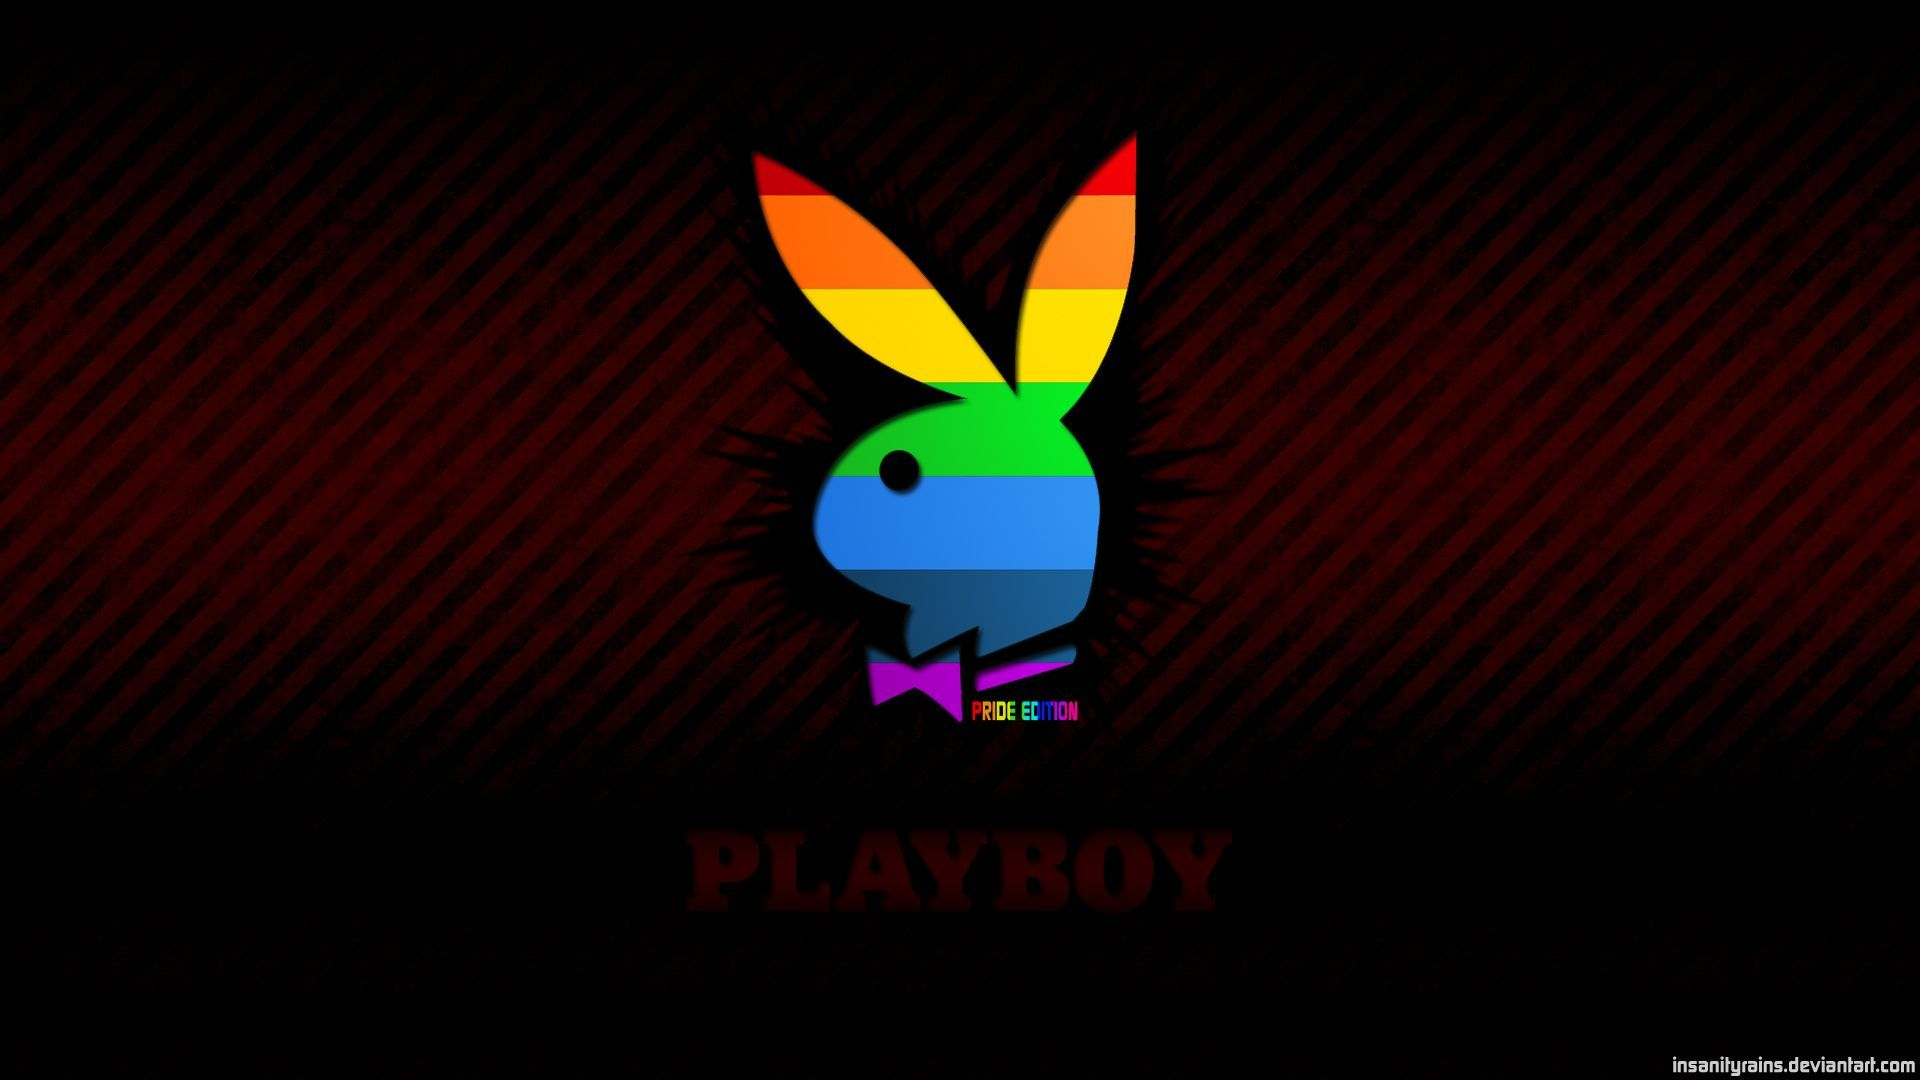 Playboy pride edition 1920x1080 by insanityrains on deviantart playboy pride edition 1920x1080 by insanityrains on deviantart voltagebd Image collections